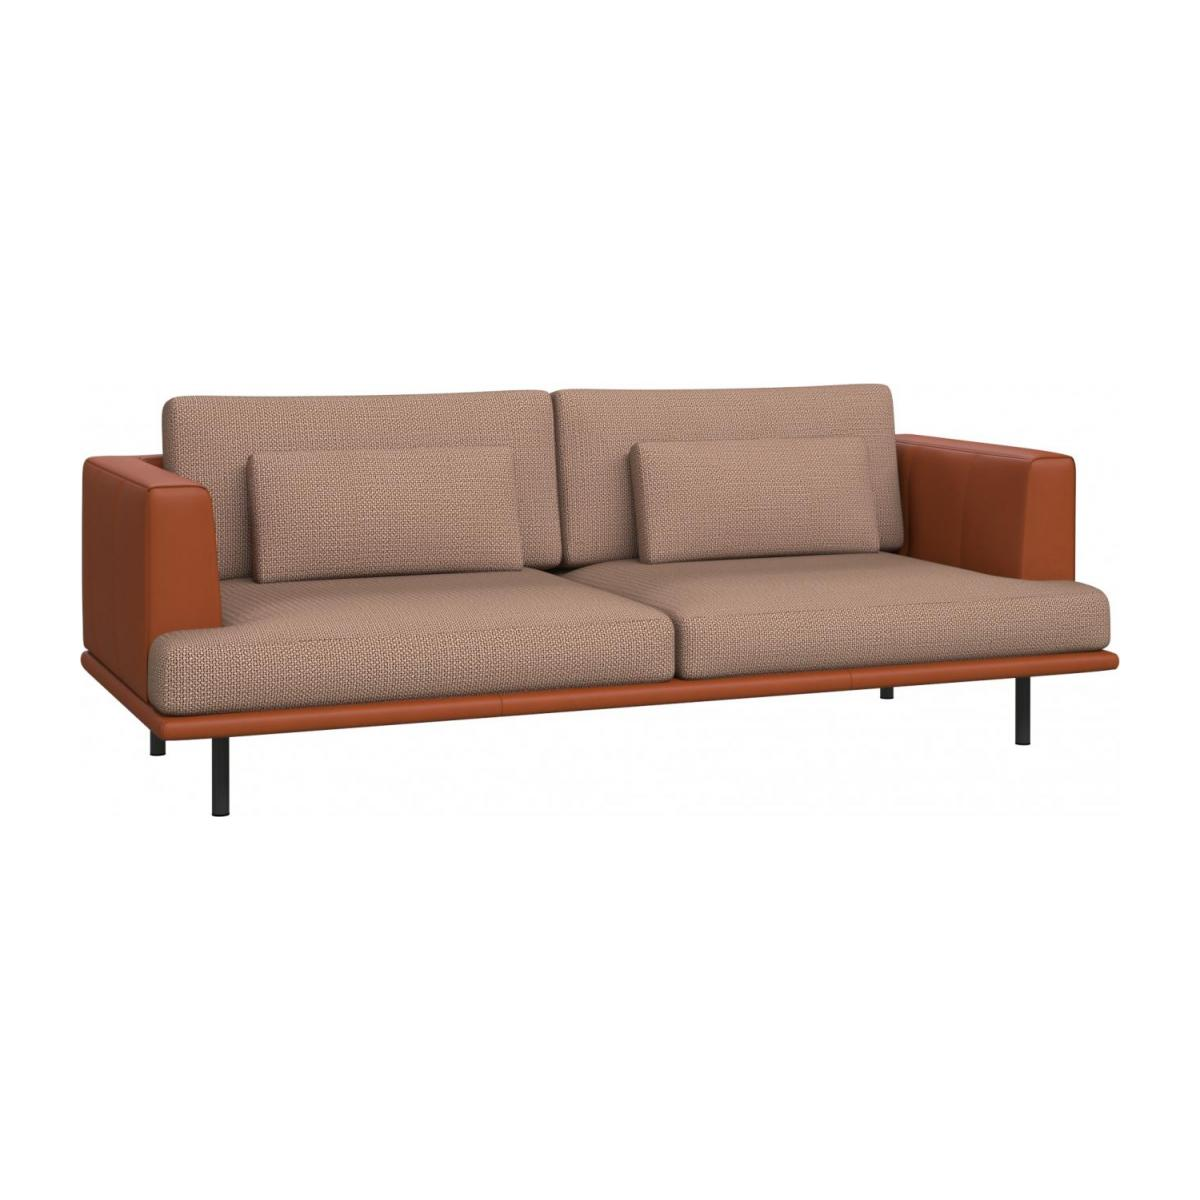 3 seater sofa in Fasoli fabric, jatoba brown with base and armrests in brown leather n°1